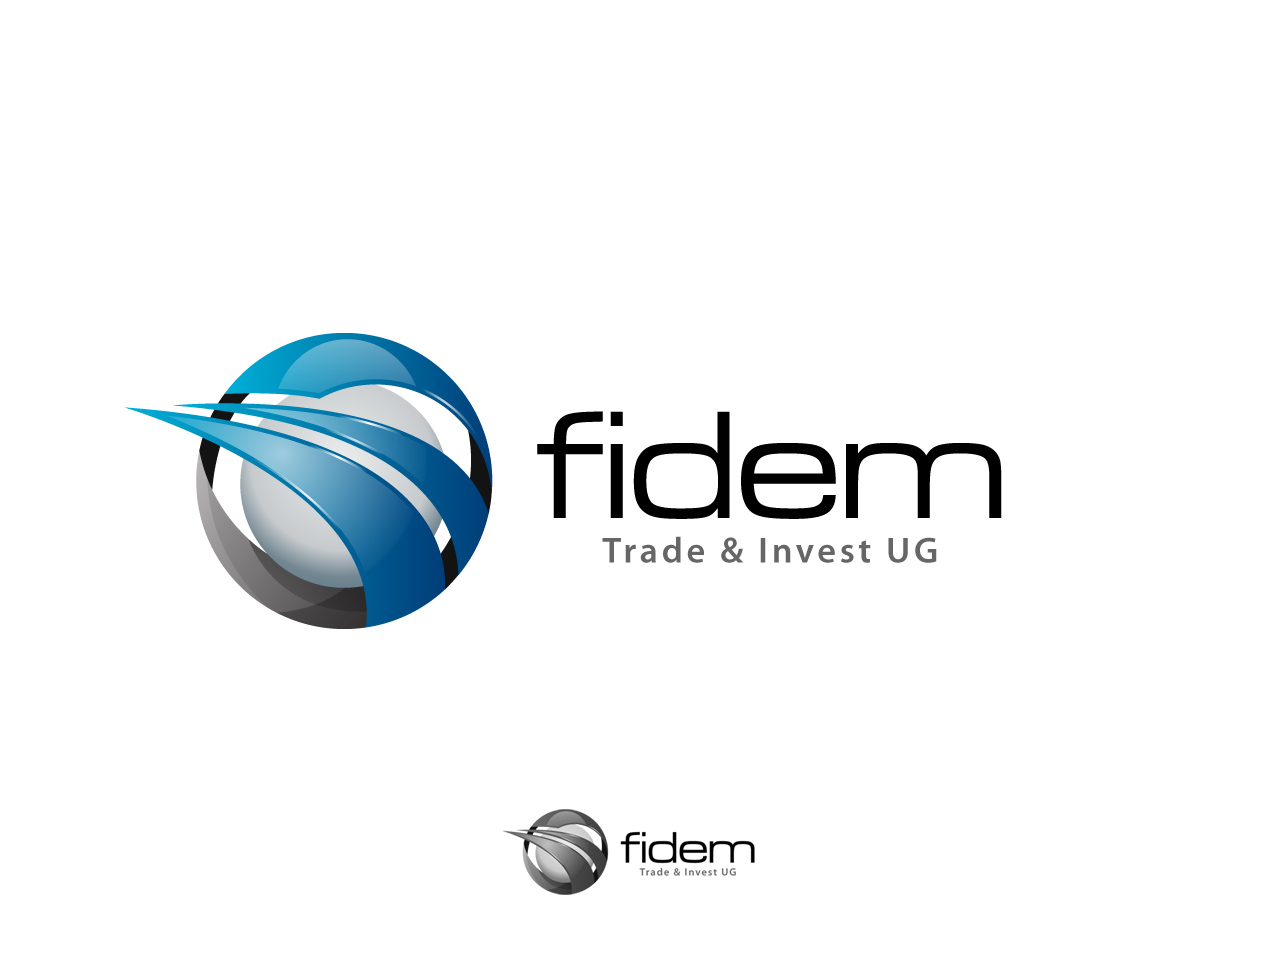 Logo Design by jpbituin - Entry No. 449 in the Logo Design Contest Professional Logo Design for FIDEM Trade & Invest UG.